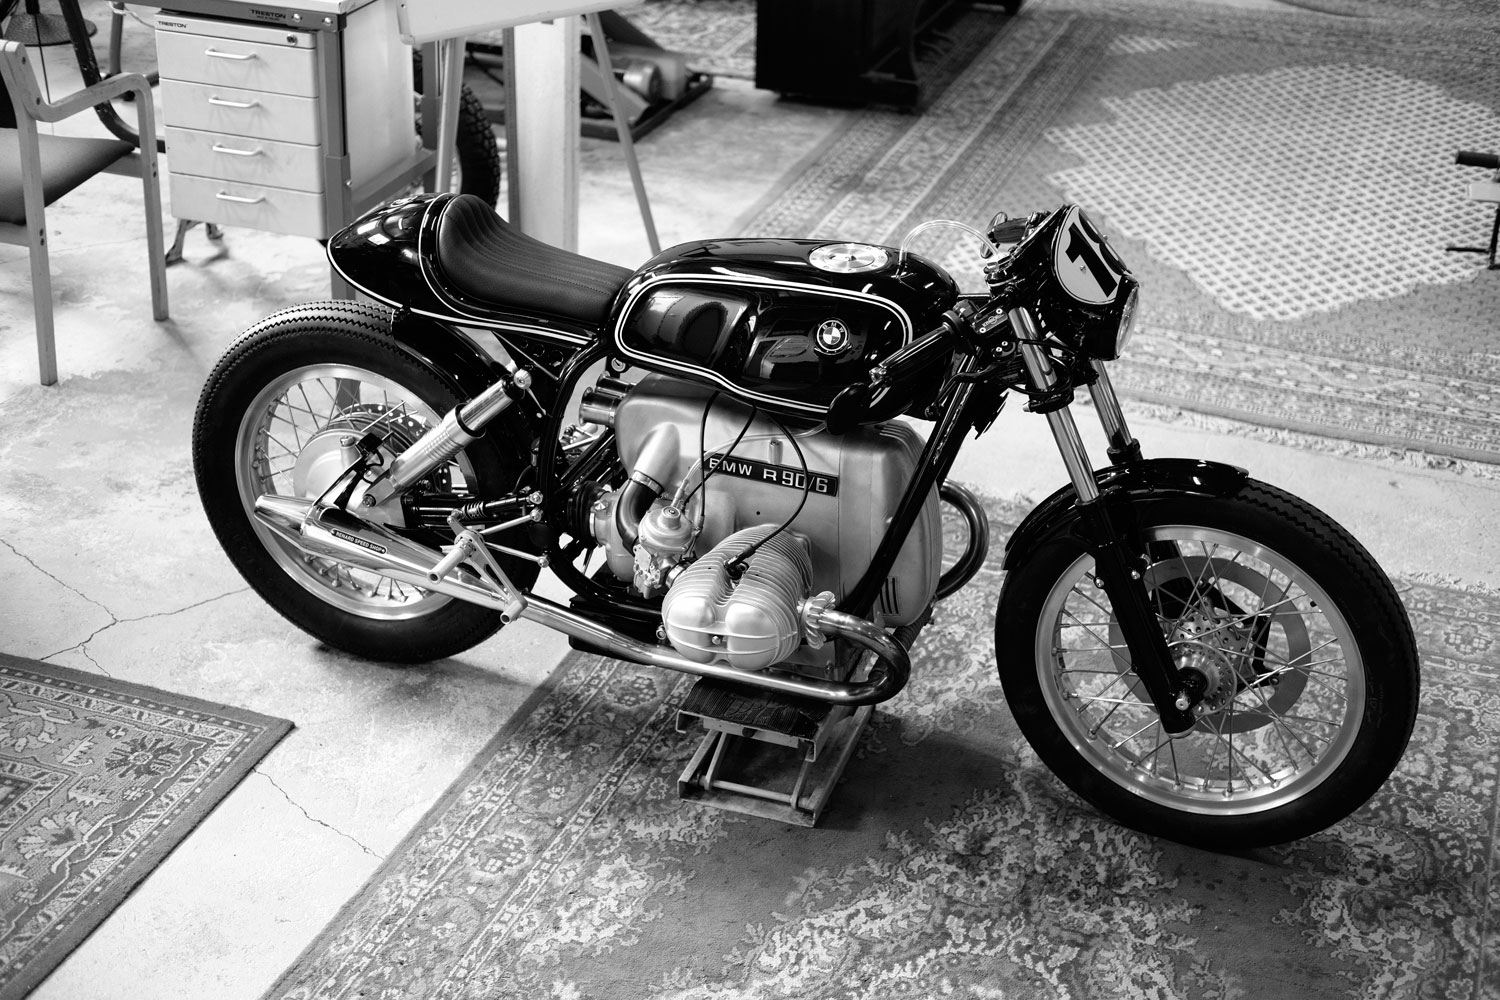 Renard Speed Shop BMW R90 Cafe Racer Motorcycle on rug in black and white